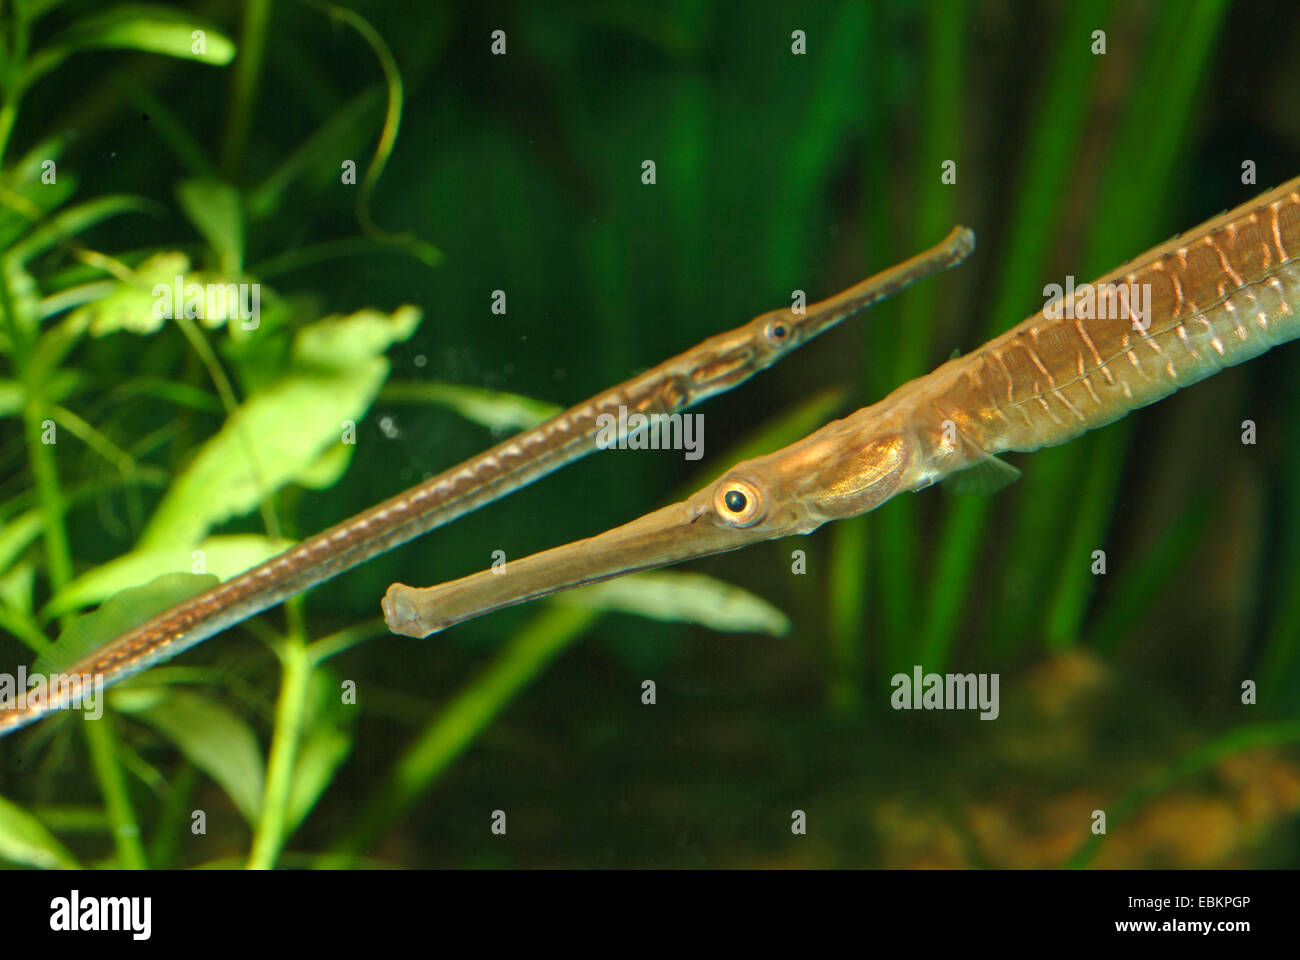 Lang-snouted Seenadeln, Freshwater Seenadeln (Doryichthys Boaja, Microphis Boaja), zwei Long-snouted Pipefishes Stockbild